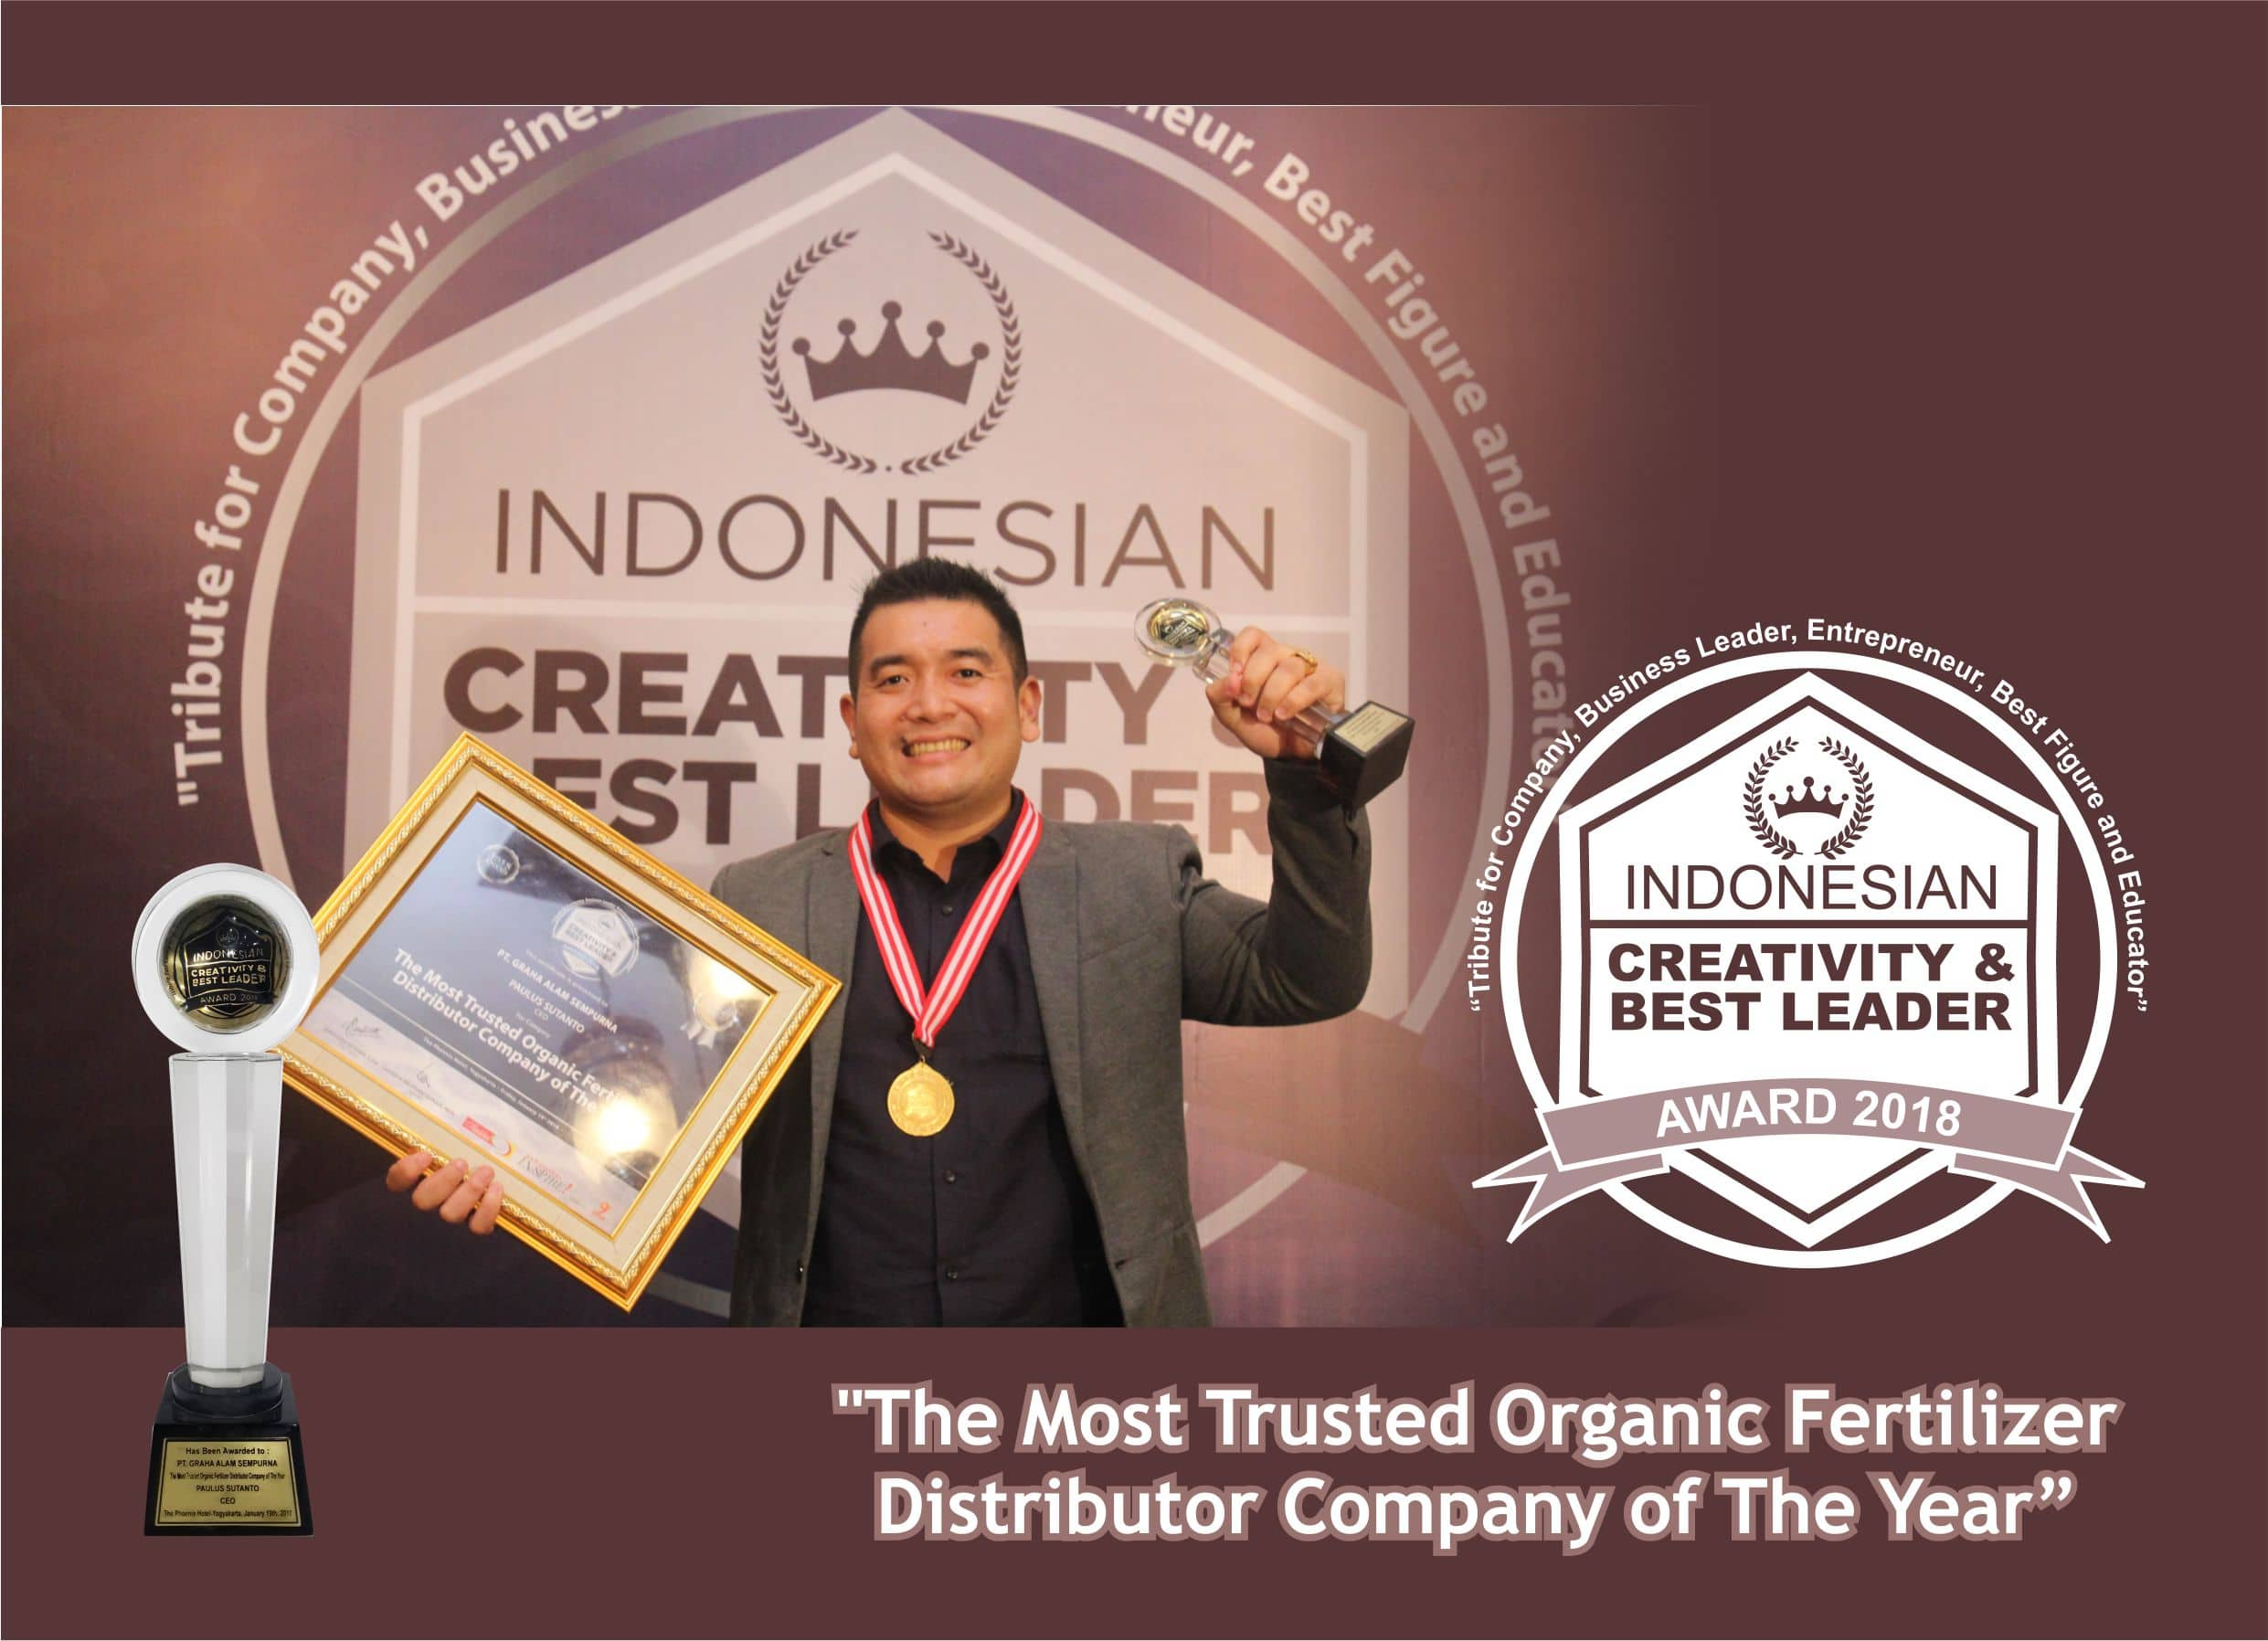 penghargaan the most trusted organic fertilizer distributor company of the year